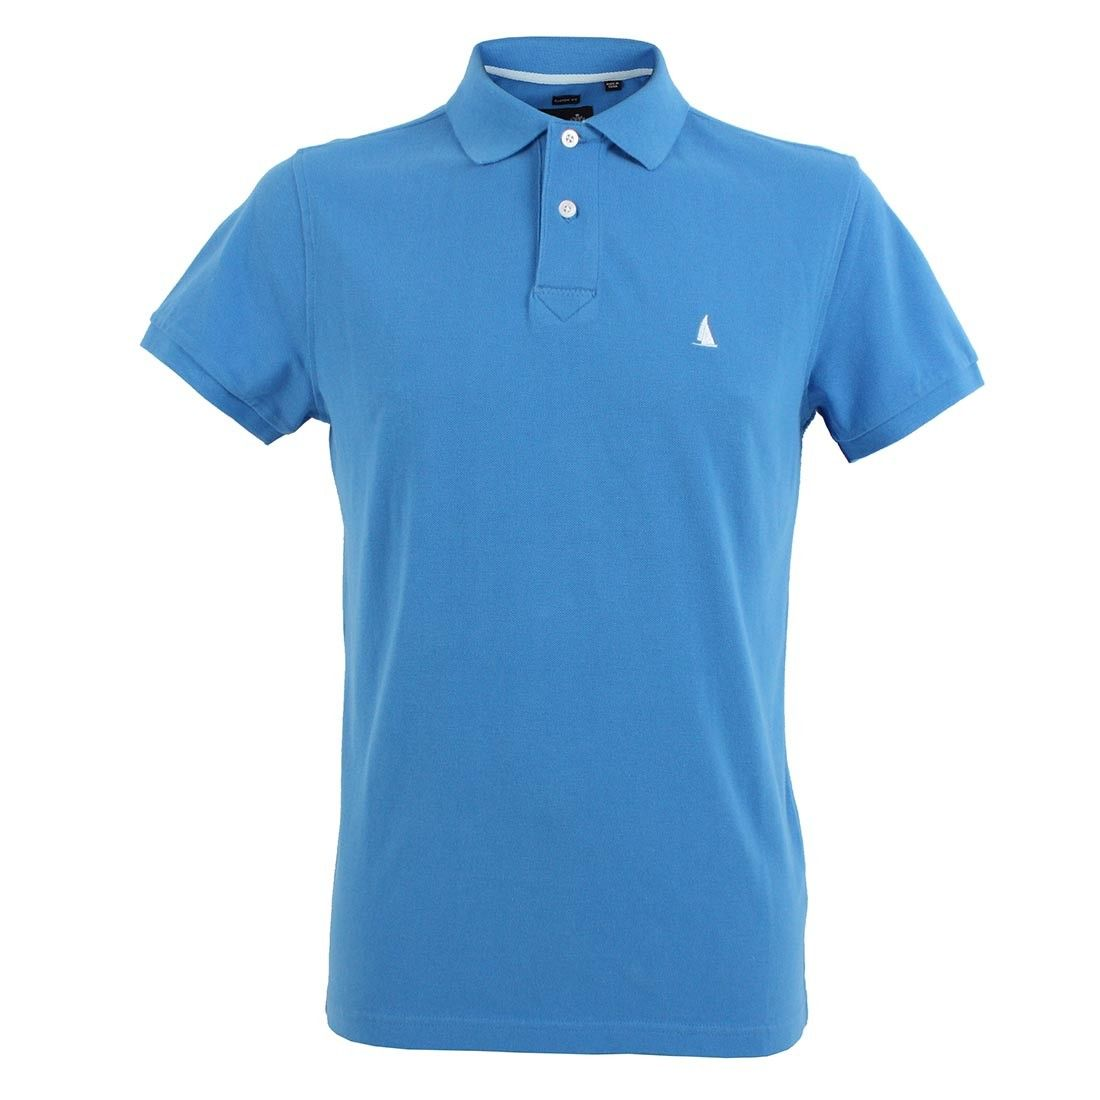 Musto Gybe Polo Shirt French Blue | Naylors.com